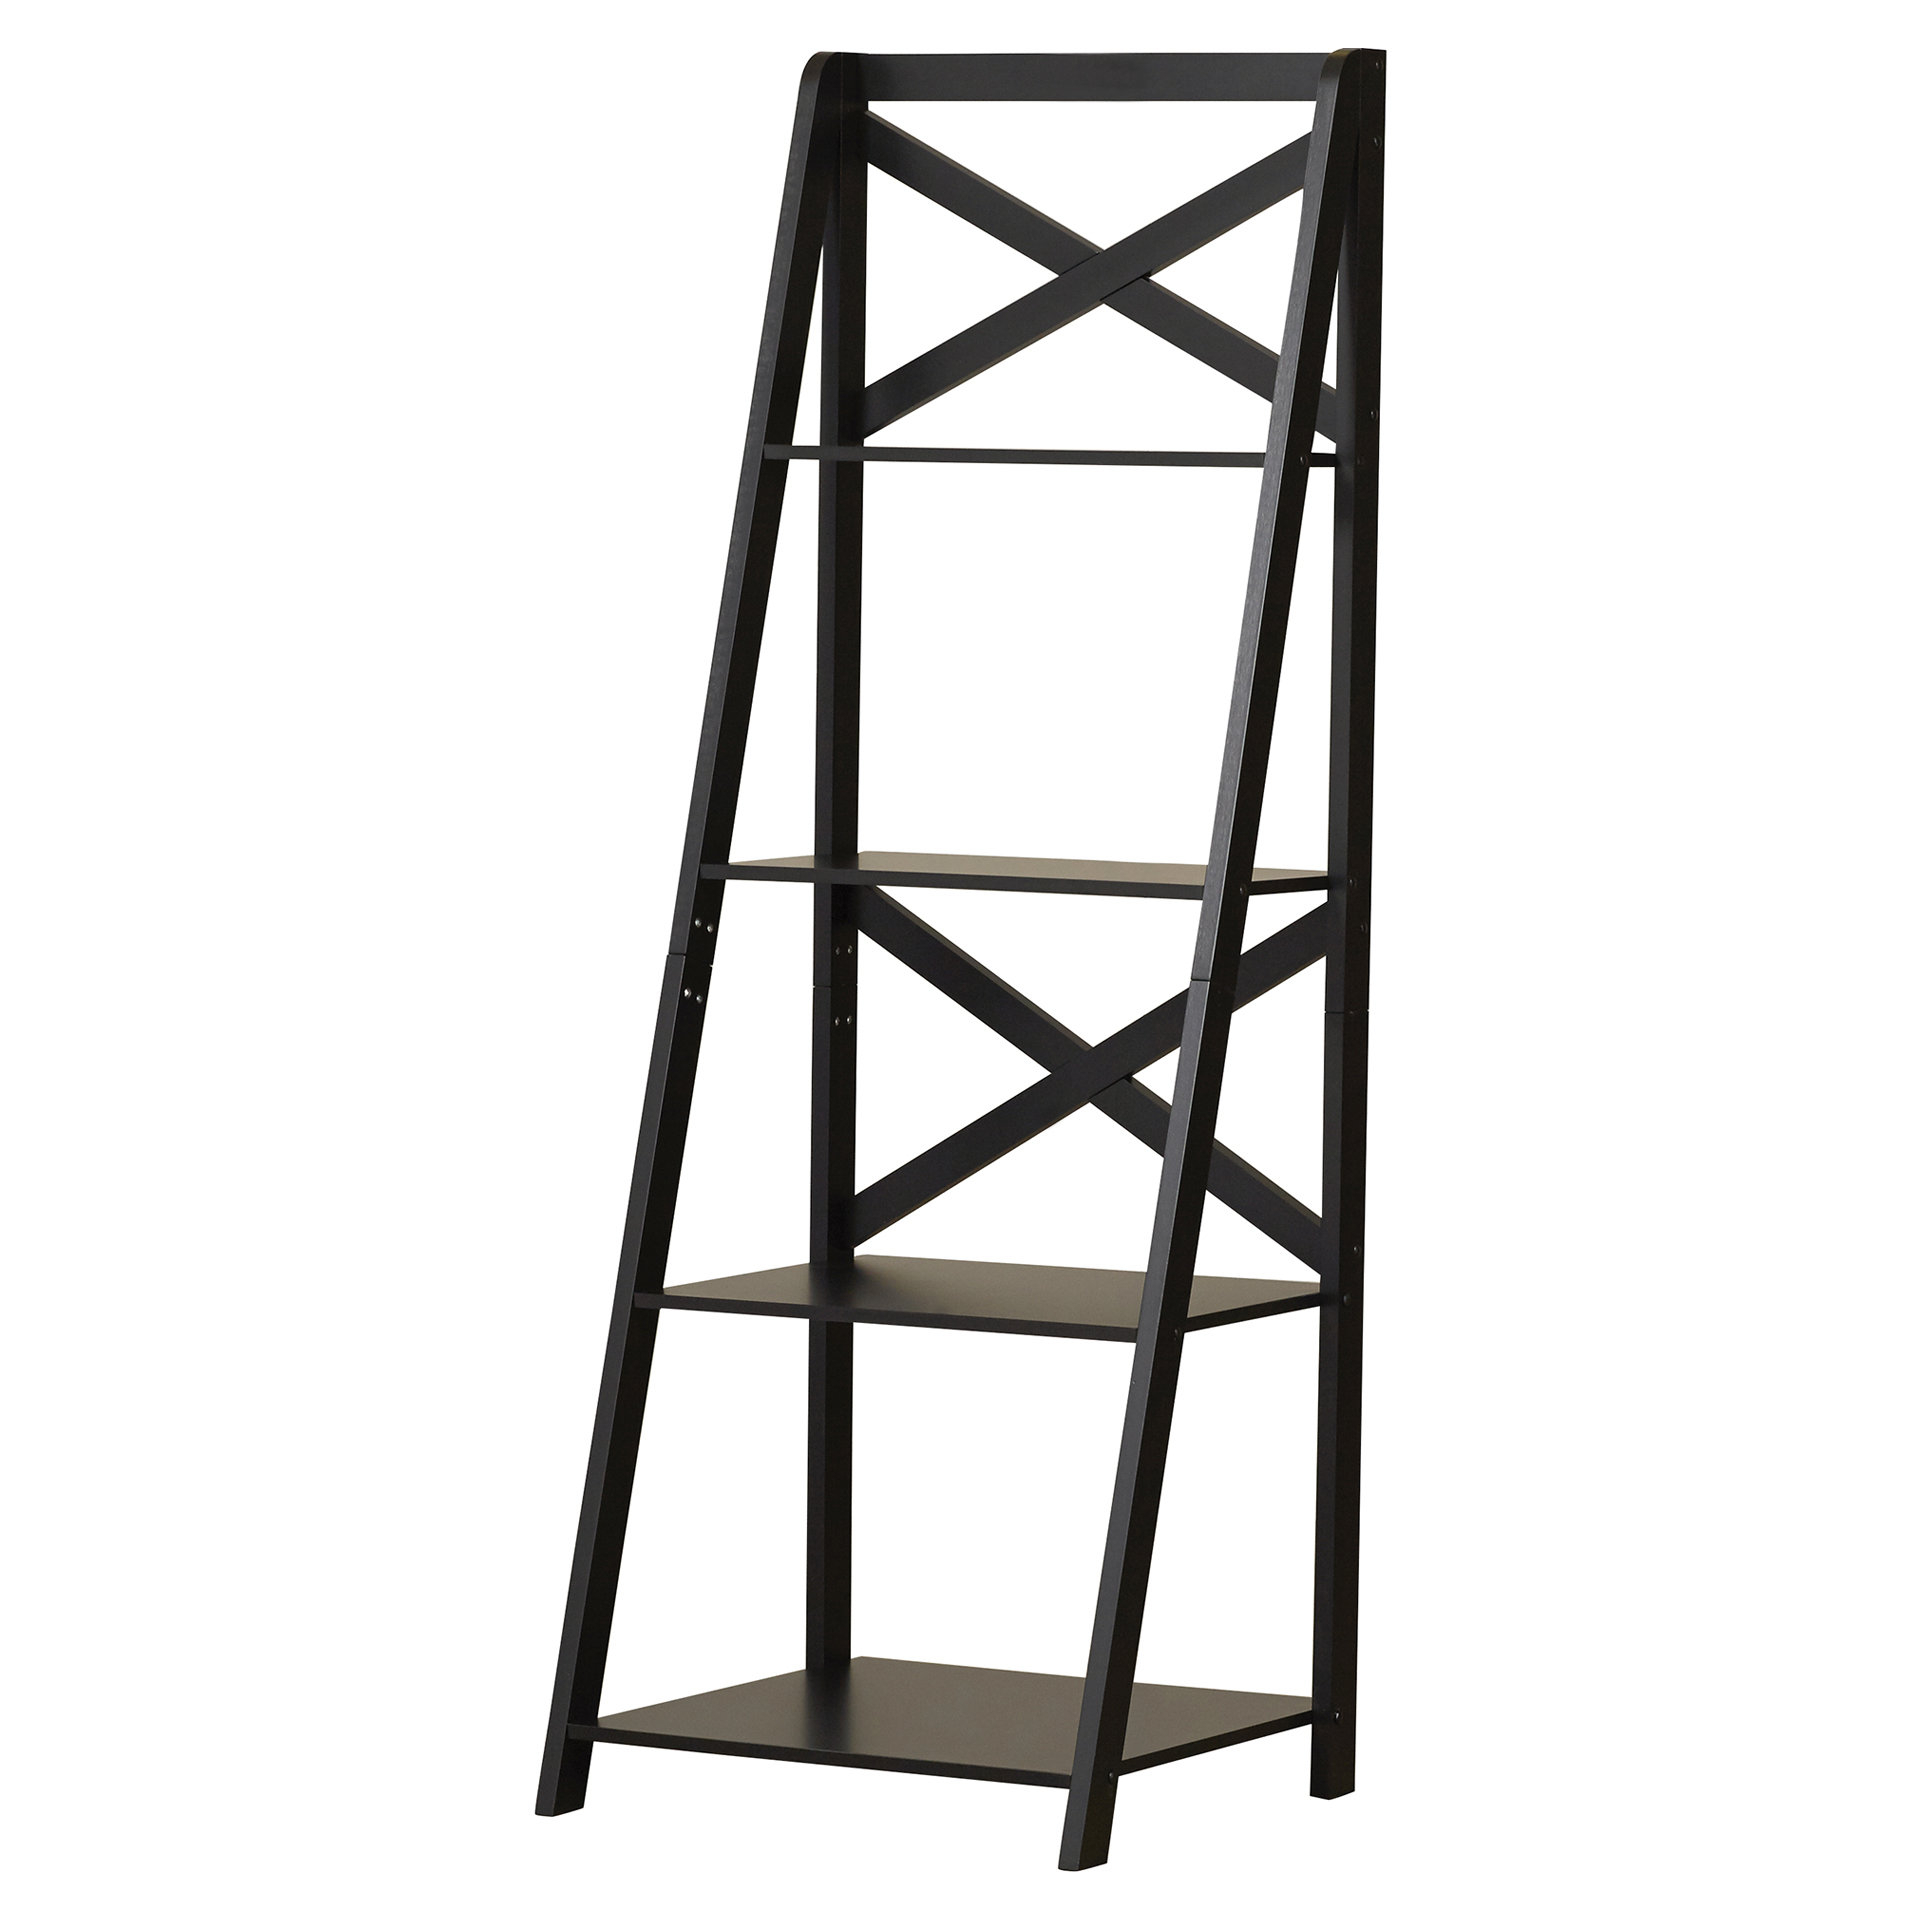 Laurel Foundry Modern Farmhouse Kaitlyn Ladder Bookcase With Regard To Latest Kaitlyn Ladder Bookcases (View 6 of 20)